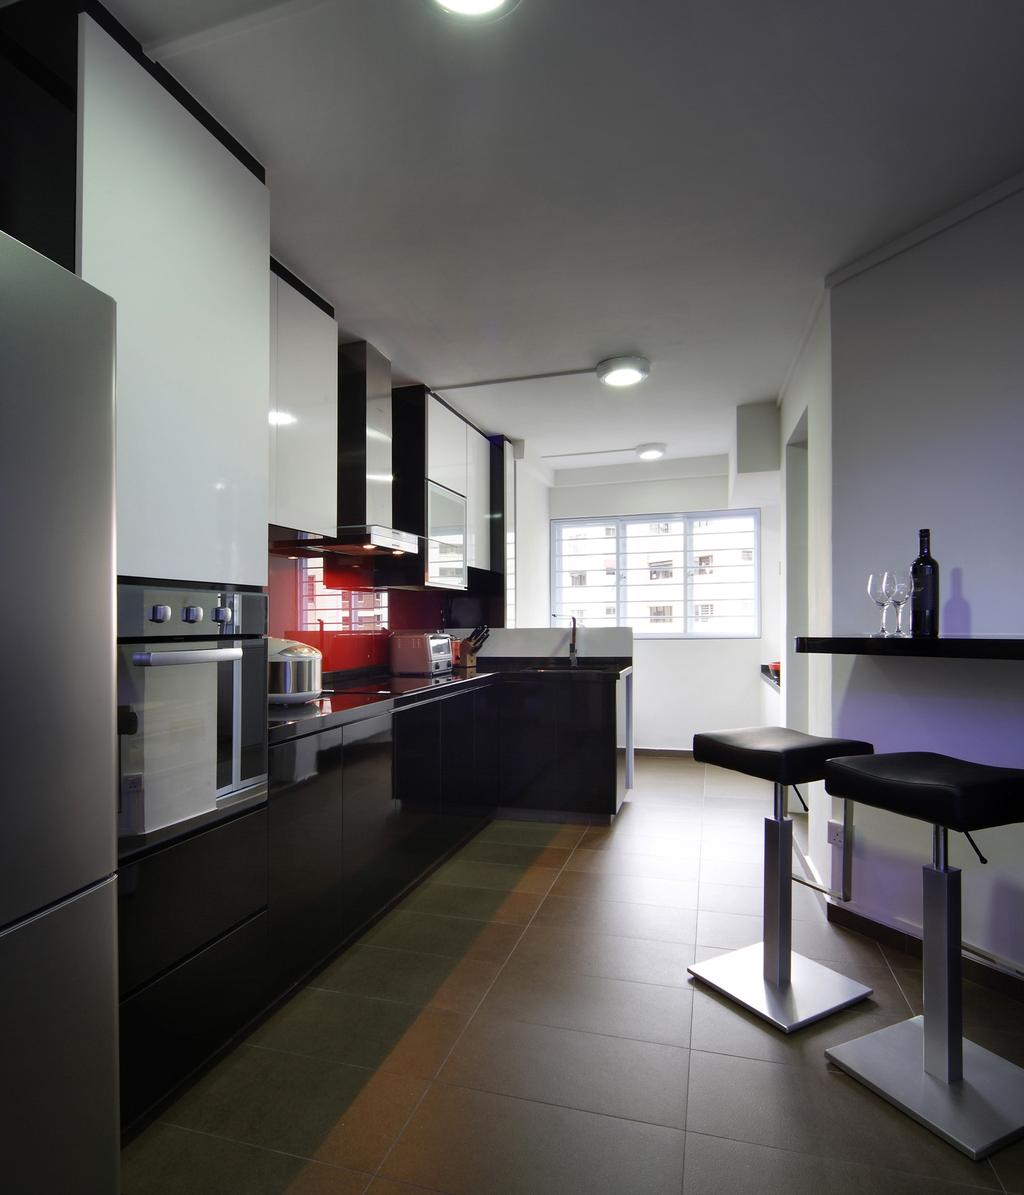 Transitional, HDB, Kitchen, Hougang Avenue 2, Interior Designer, Chapter One Interior Design, Barstools, Chair, Kitchen Counter, Tile, Tiles, Exhaust Hood, Mounted Table, Black, White, Red, Cabinet, Building, Housing, Indoors, Loft, Furniture, Appliance, Electrical Device, Oven, Interior Design, Room